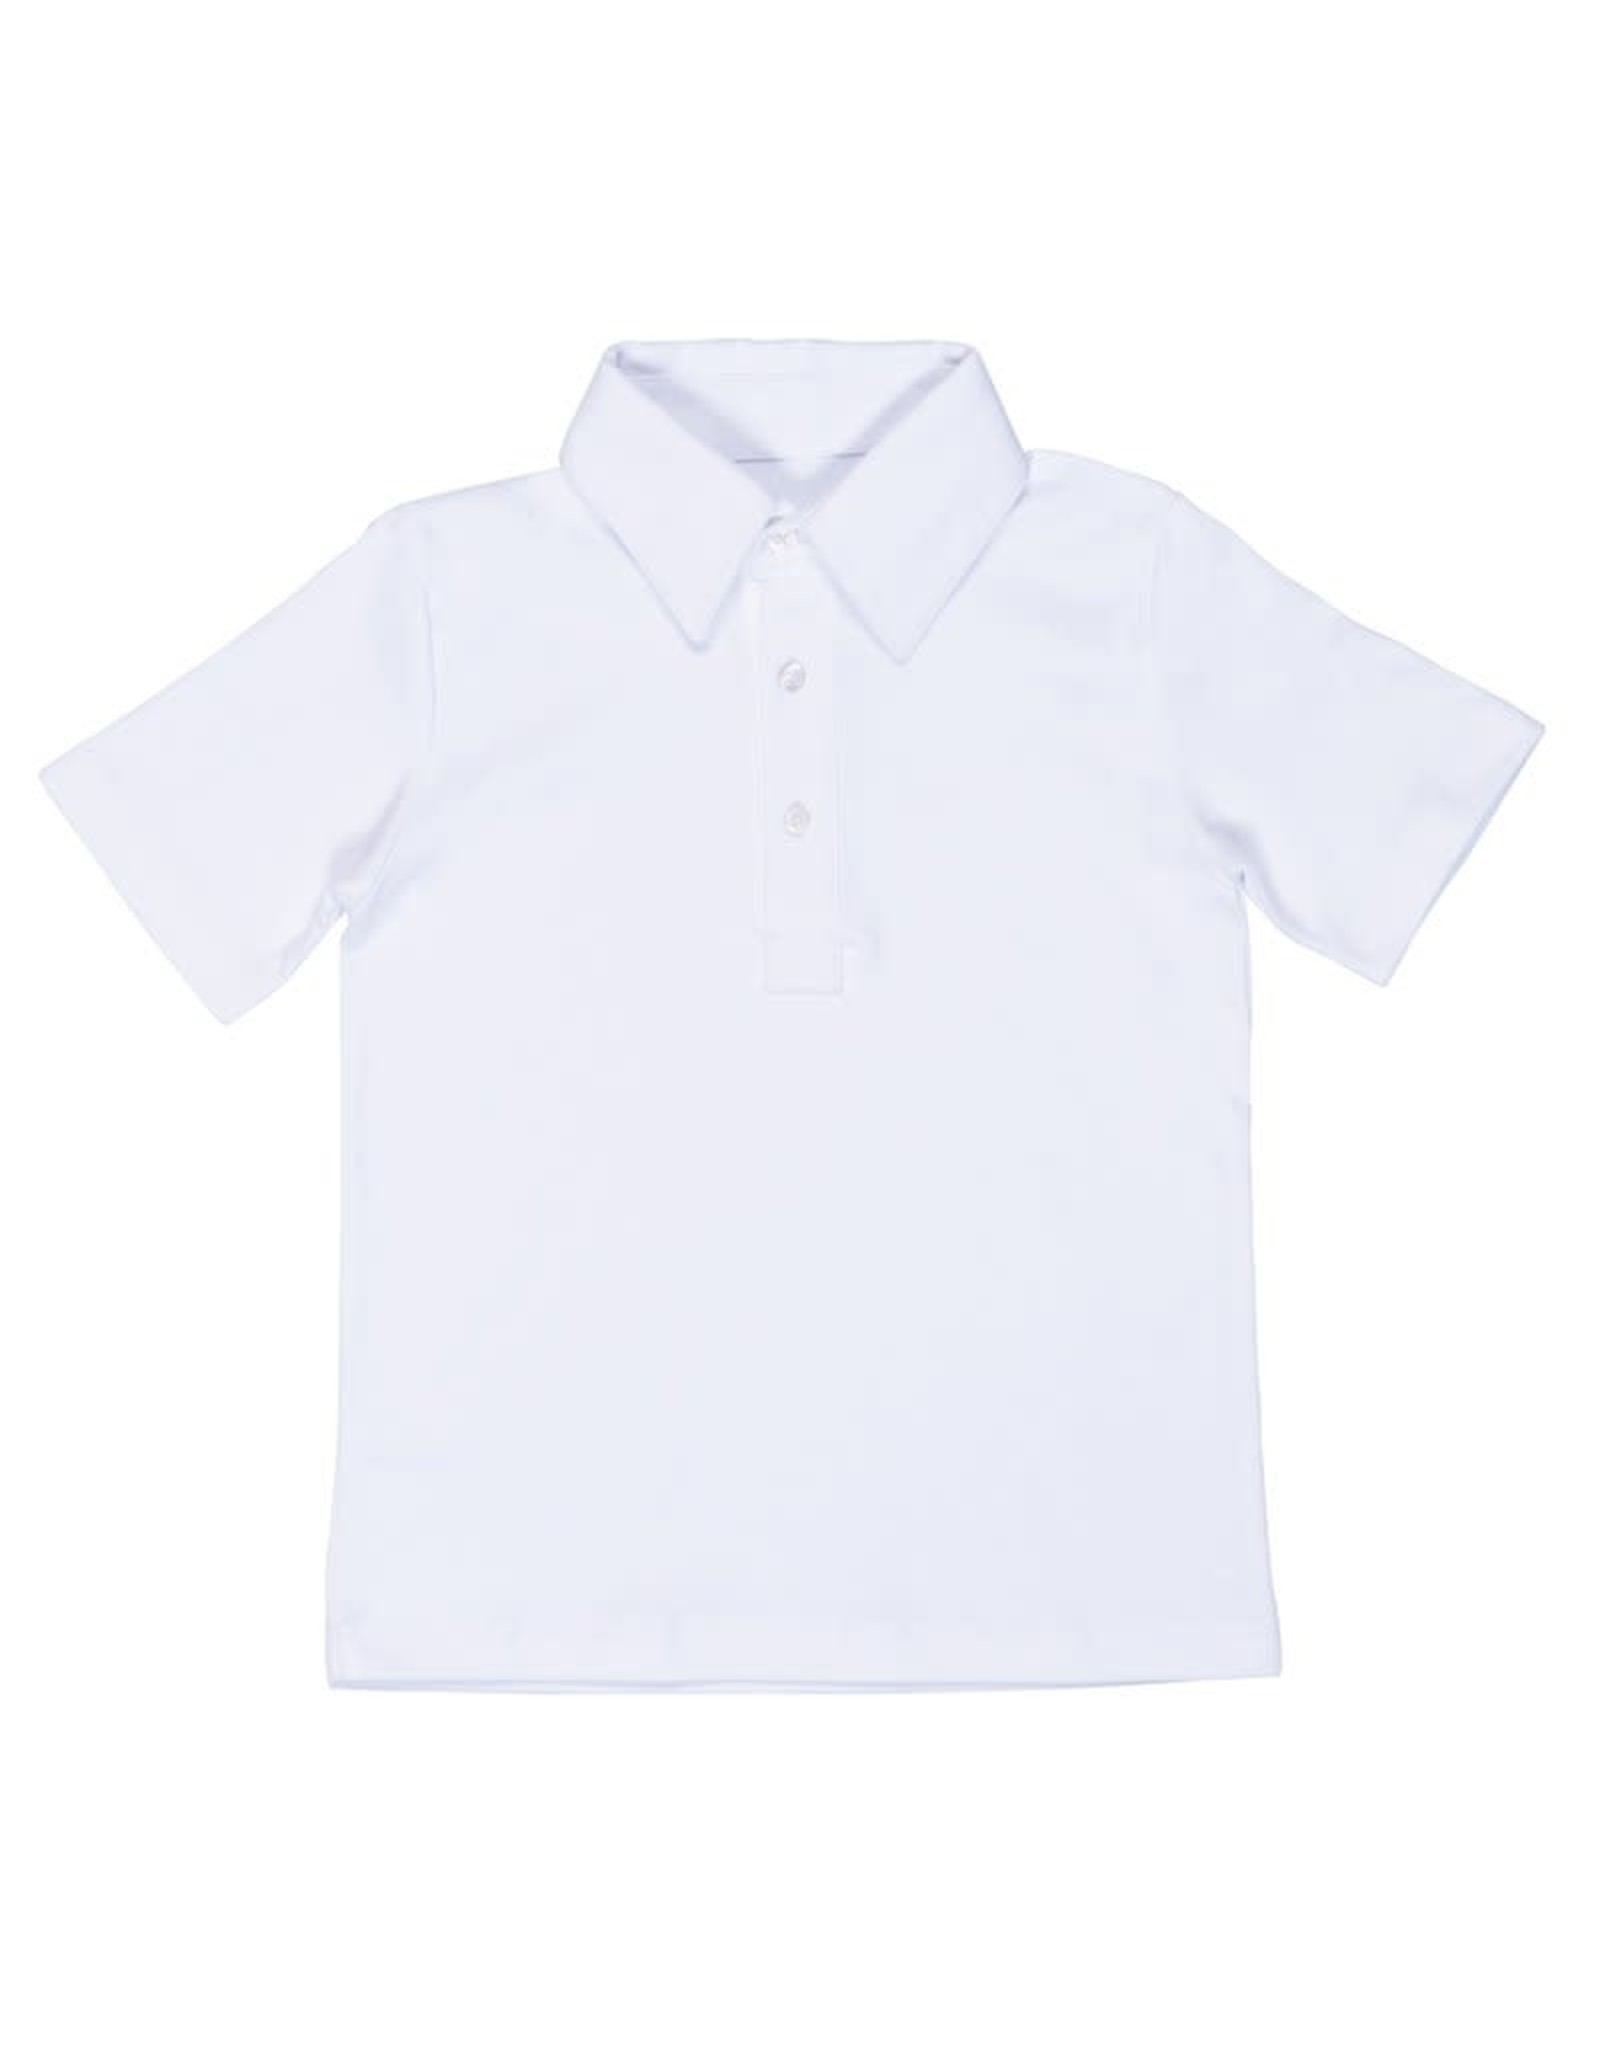 Lila and Hayes Short Sleeve Golf Polo White